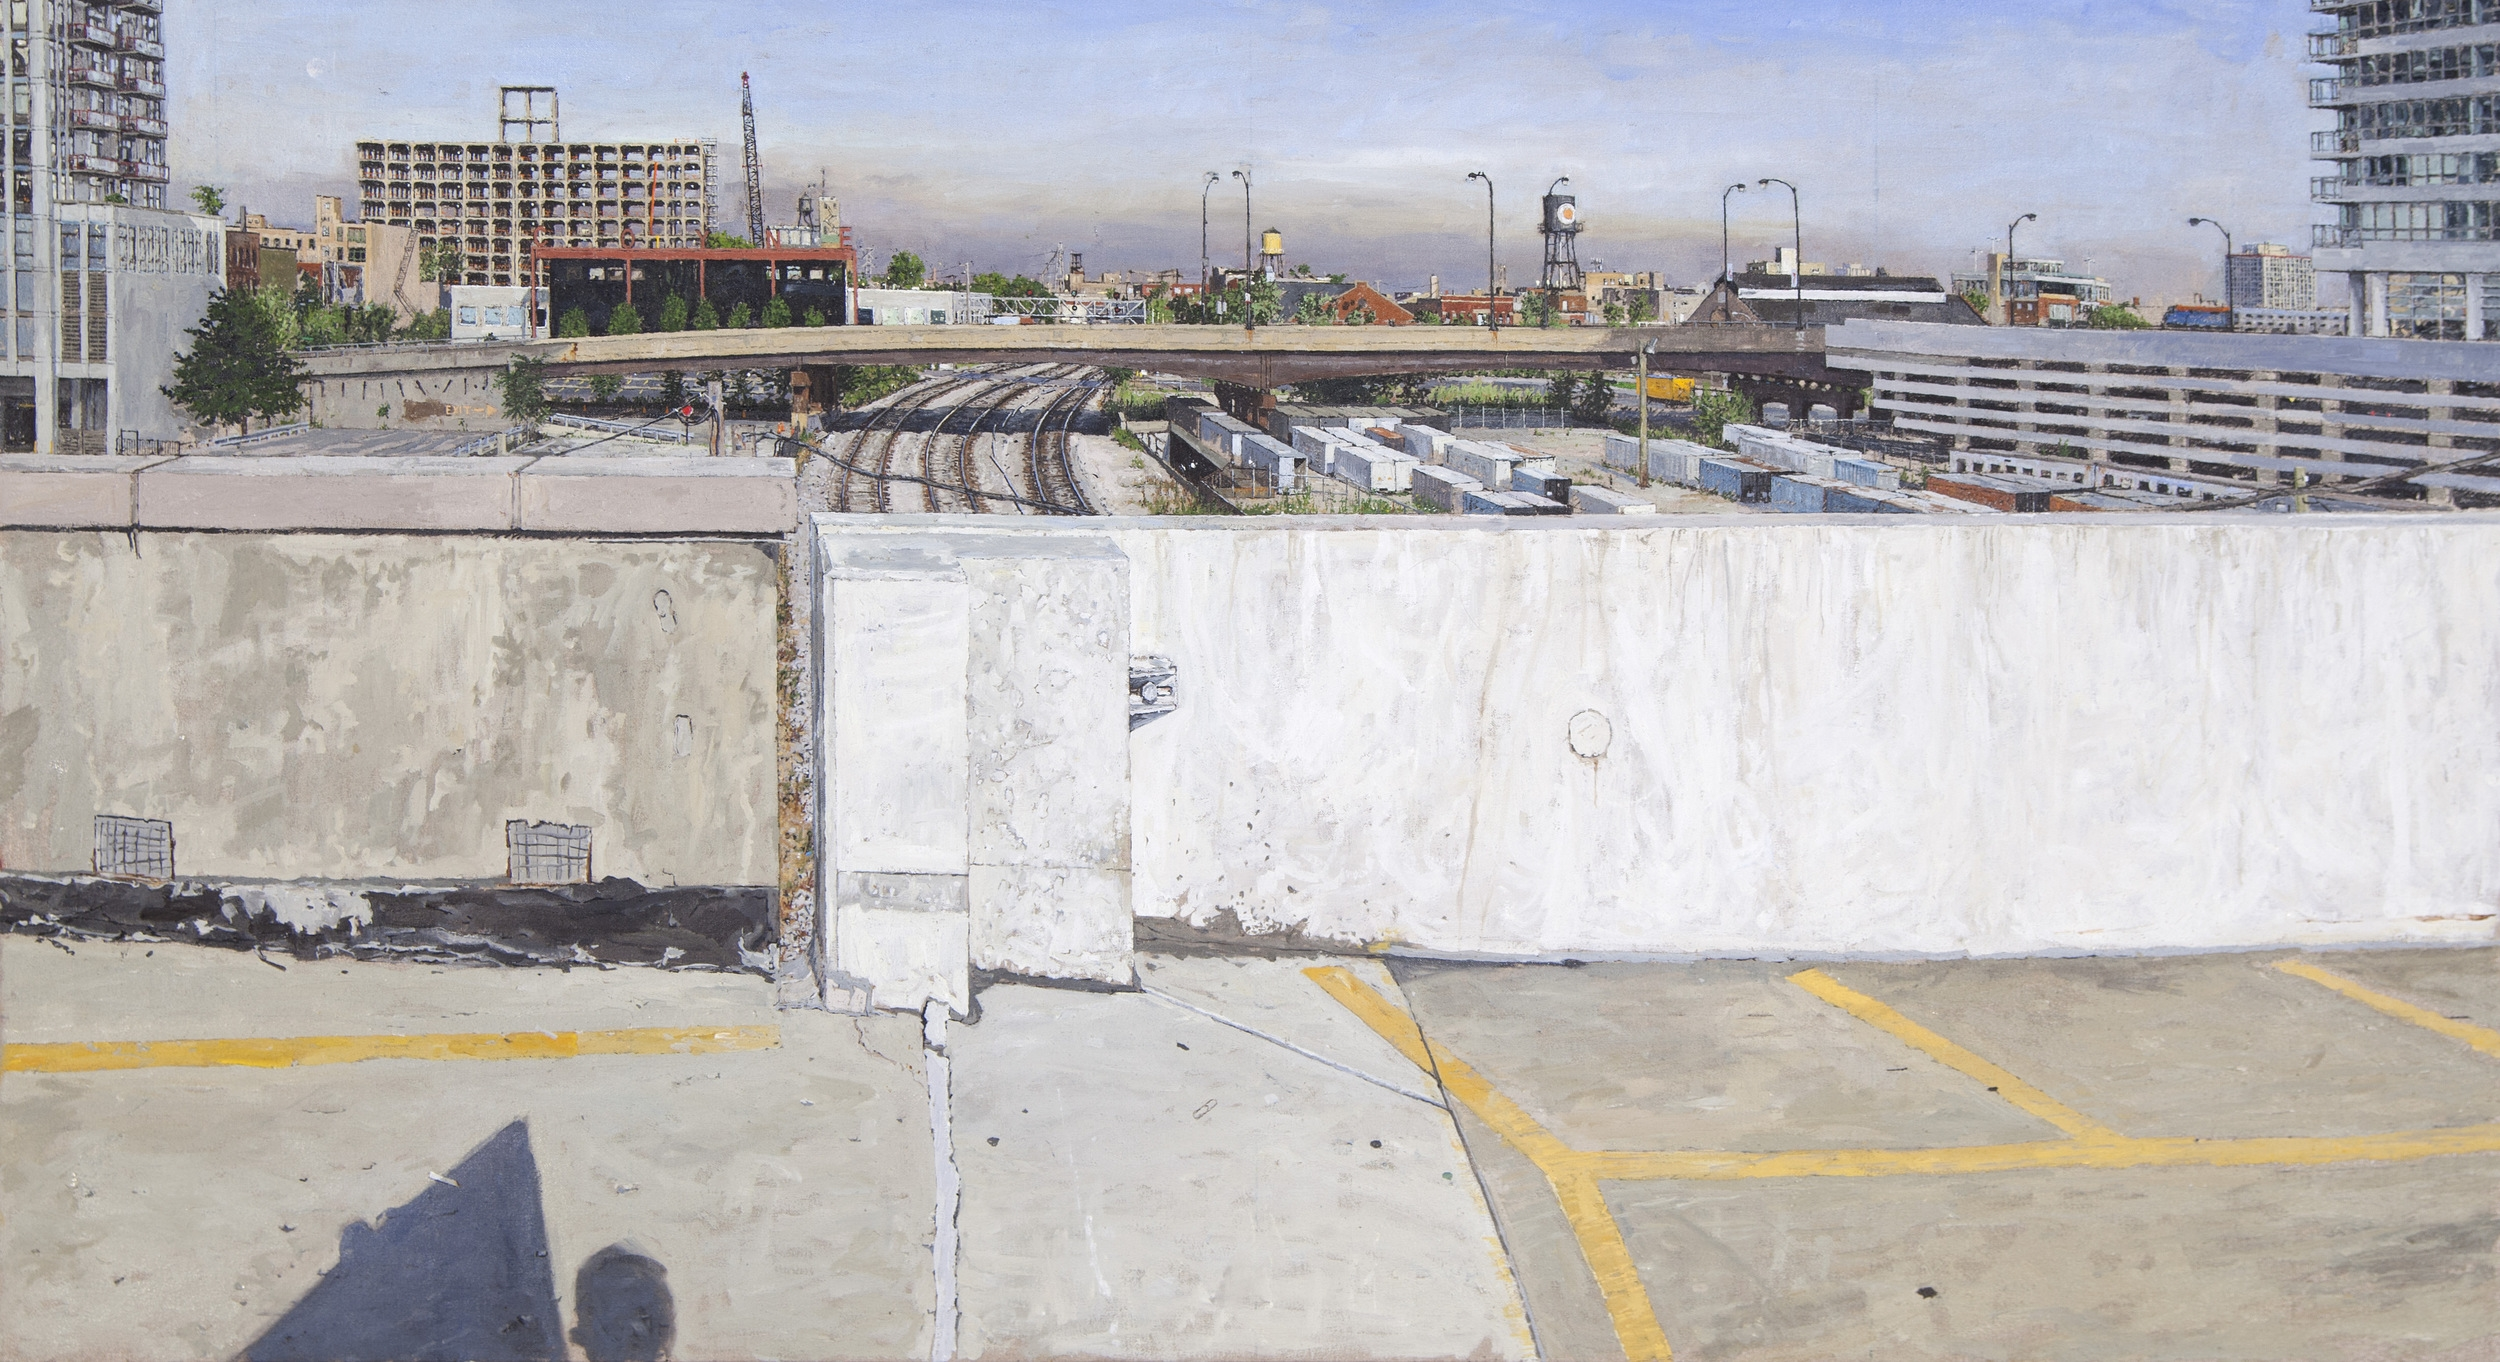 ELEVATED PARKING LOT, LOOKING WEST WITH RENOVATION OF GOOGLE HEADQUARTERS, OIL ON LINEN, 28X49'', 2013